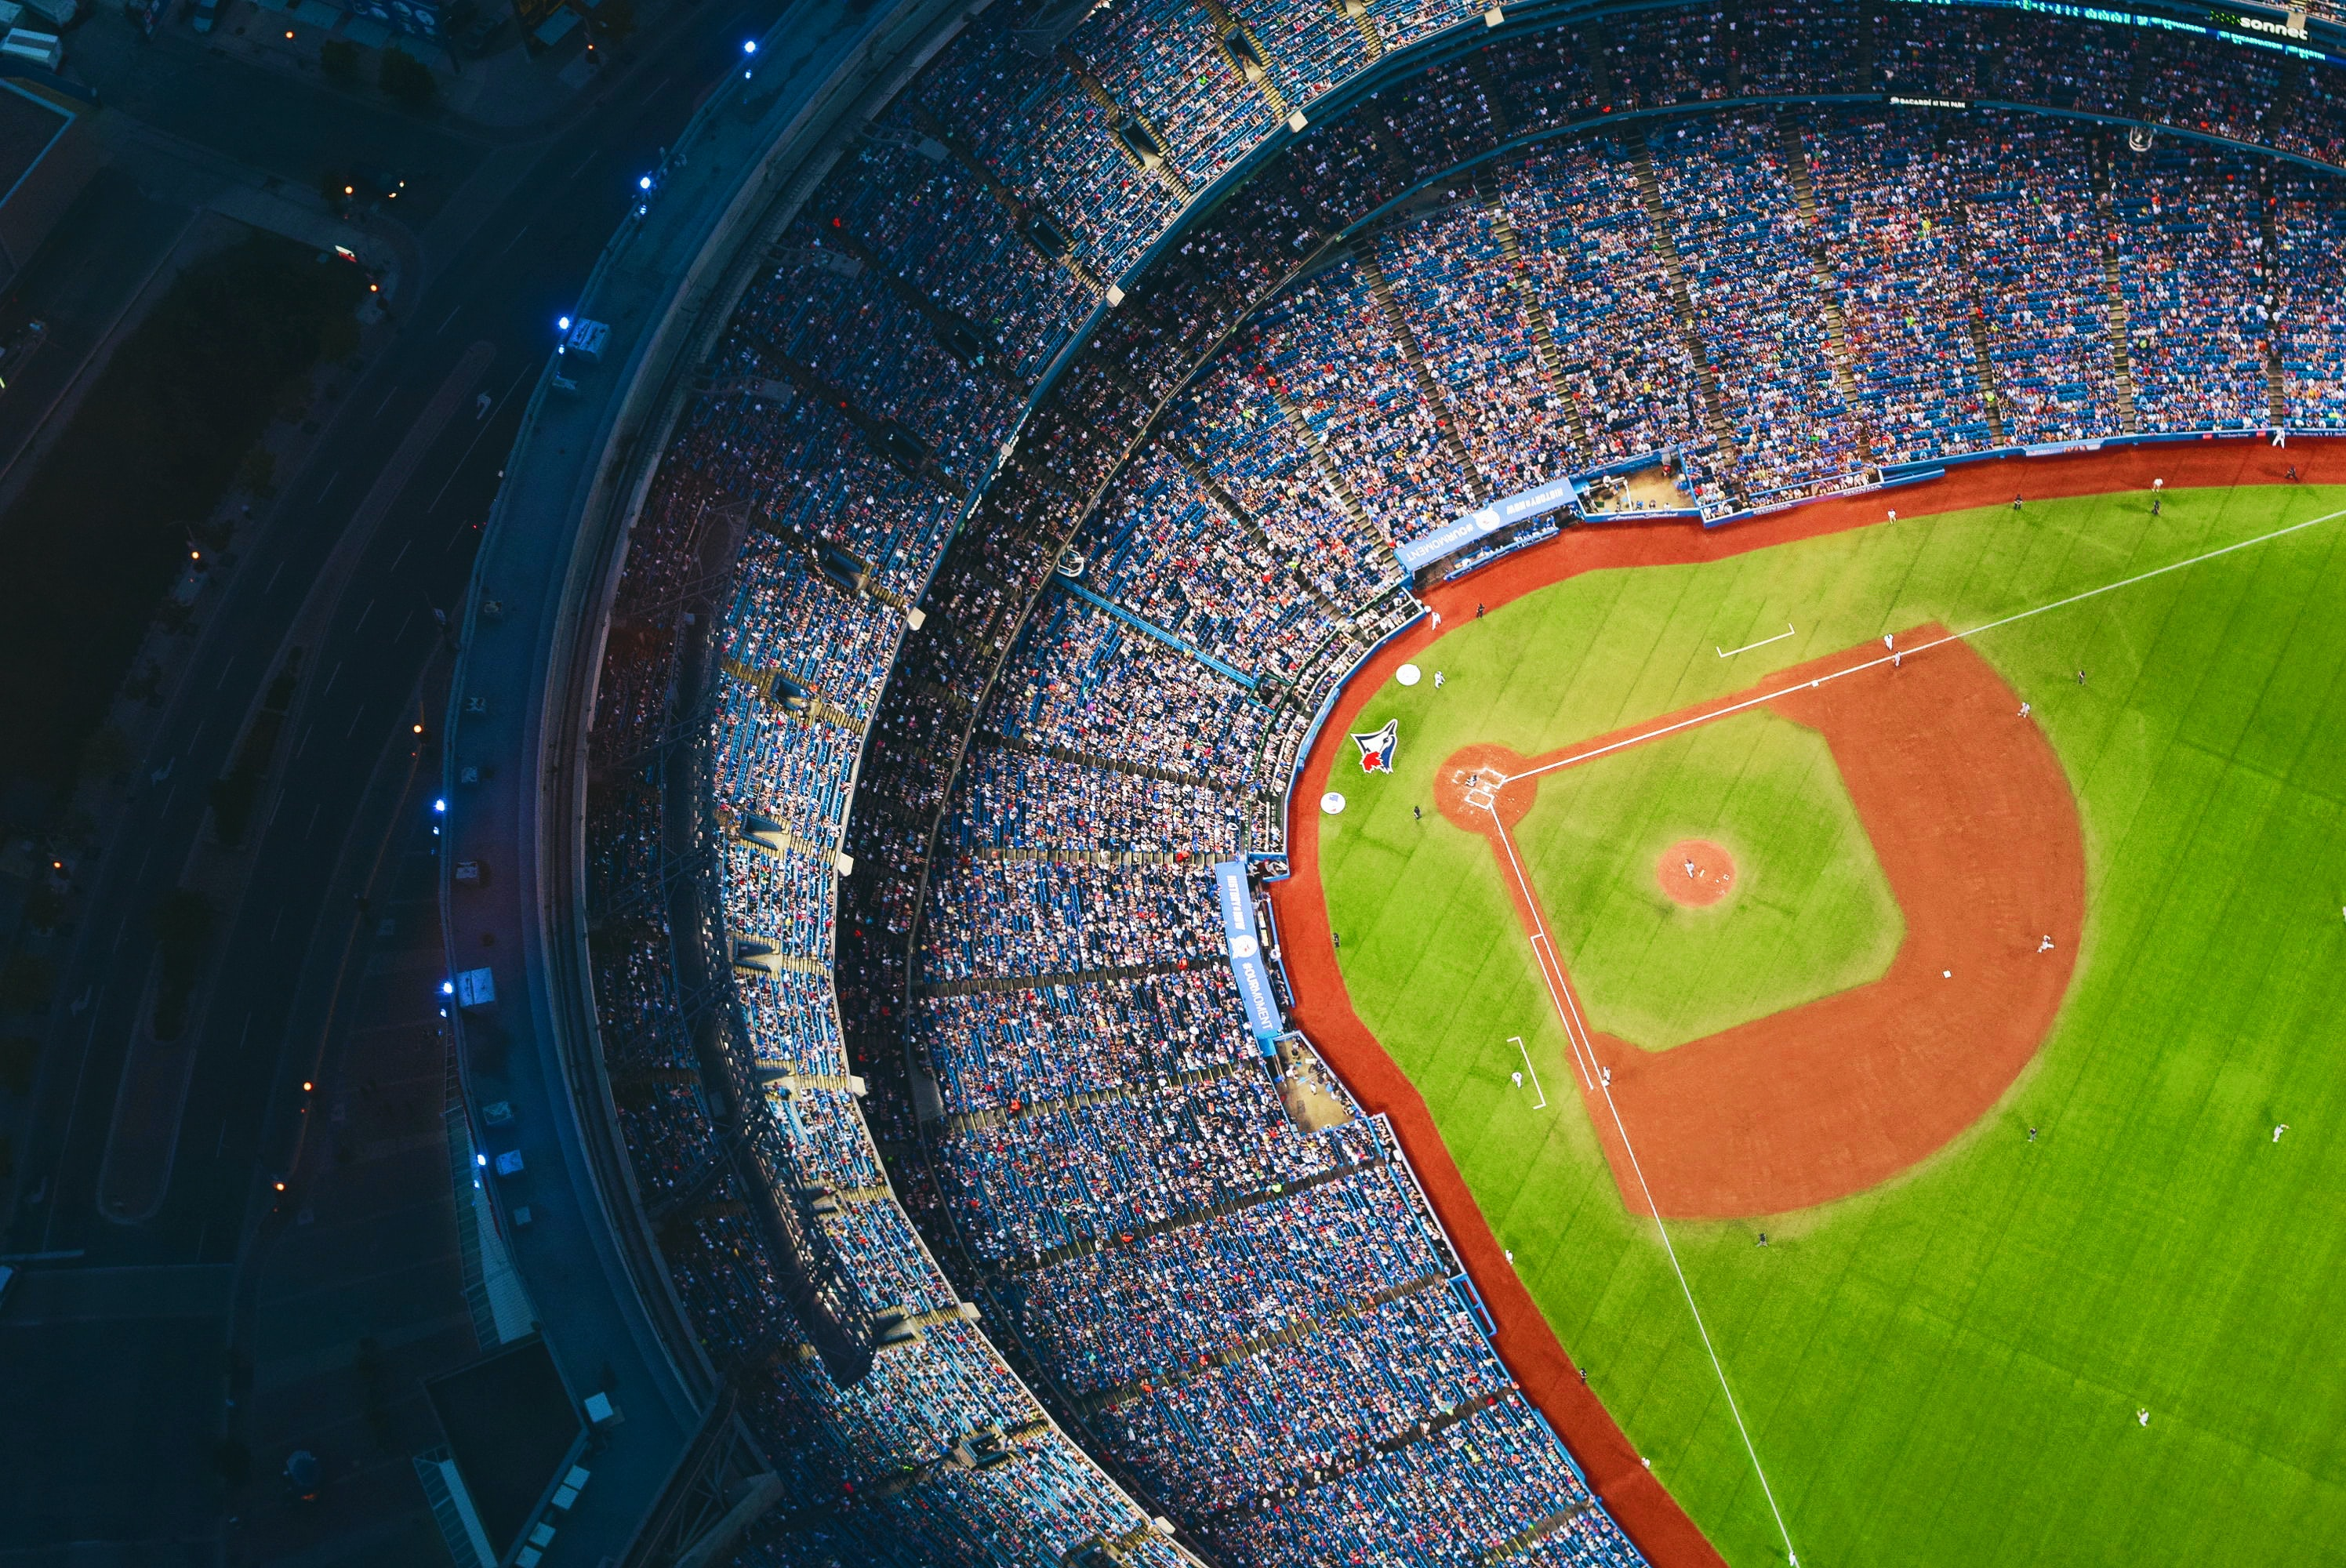 Professional baseball game at the Rogers Centre, home of the Toronto Blue Jays